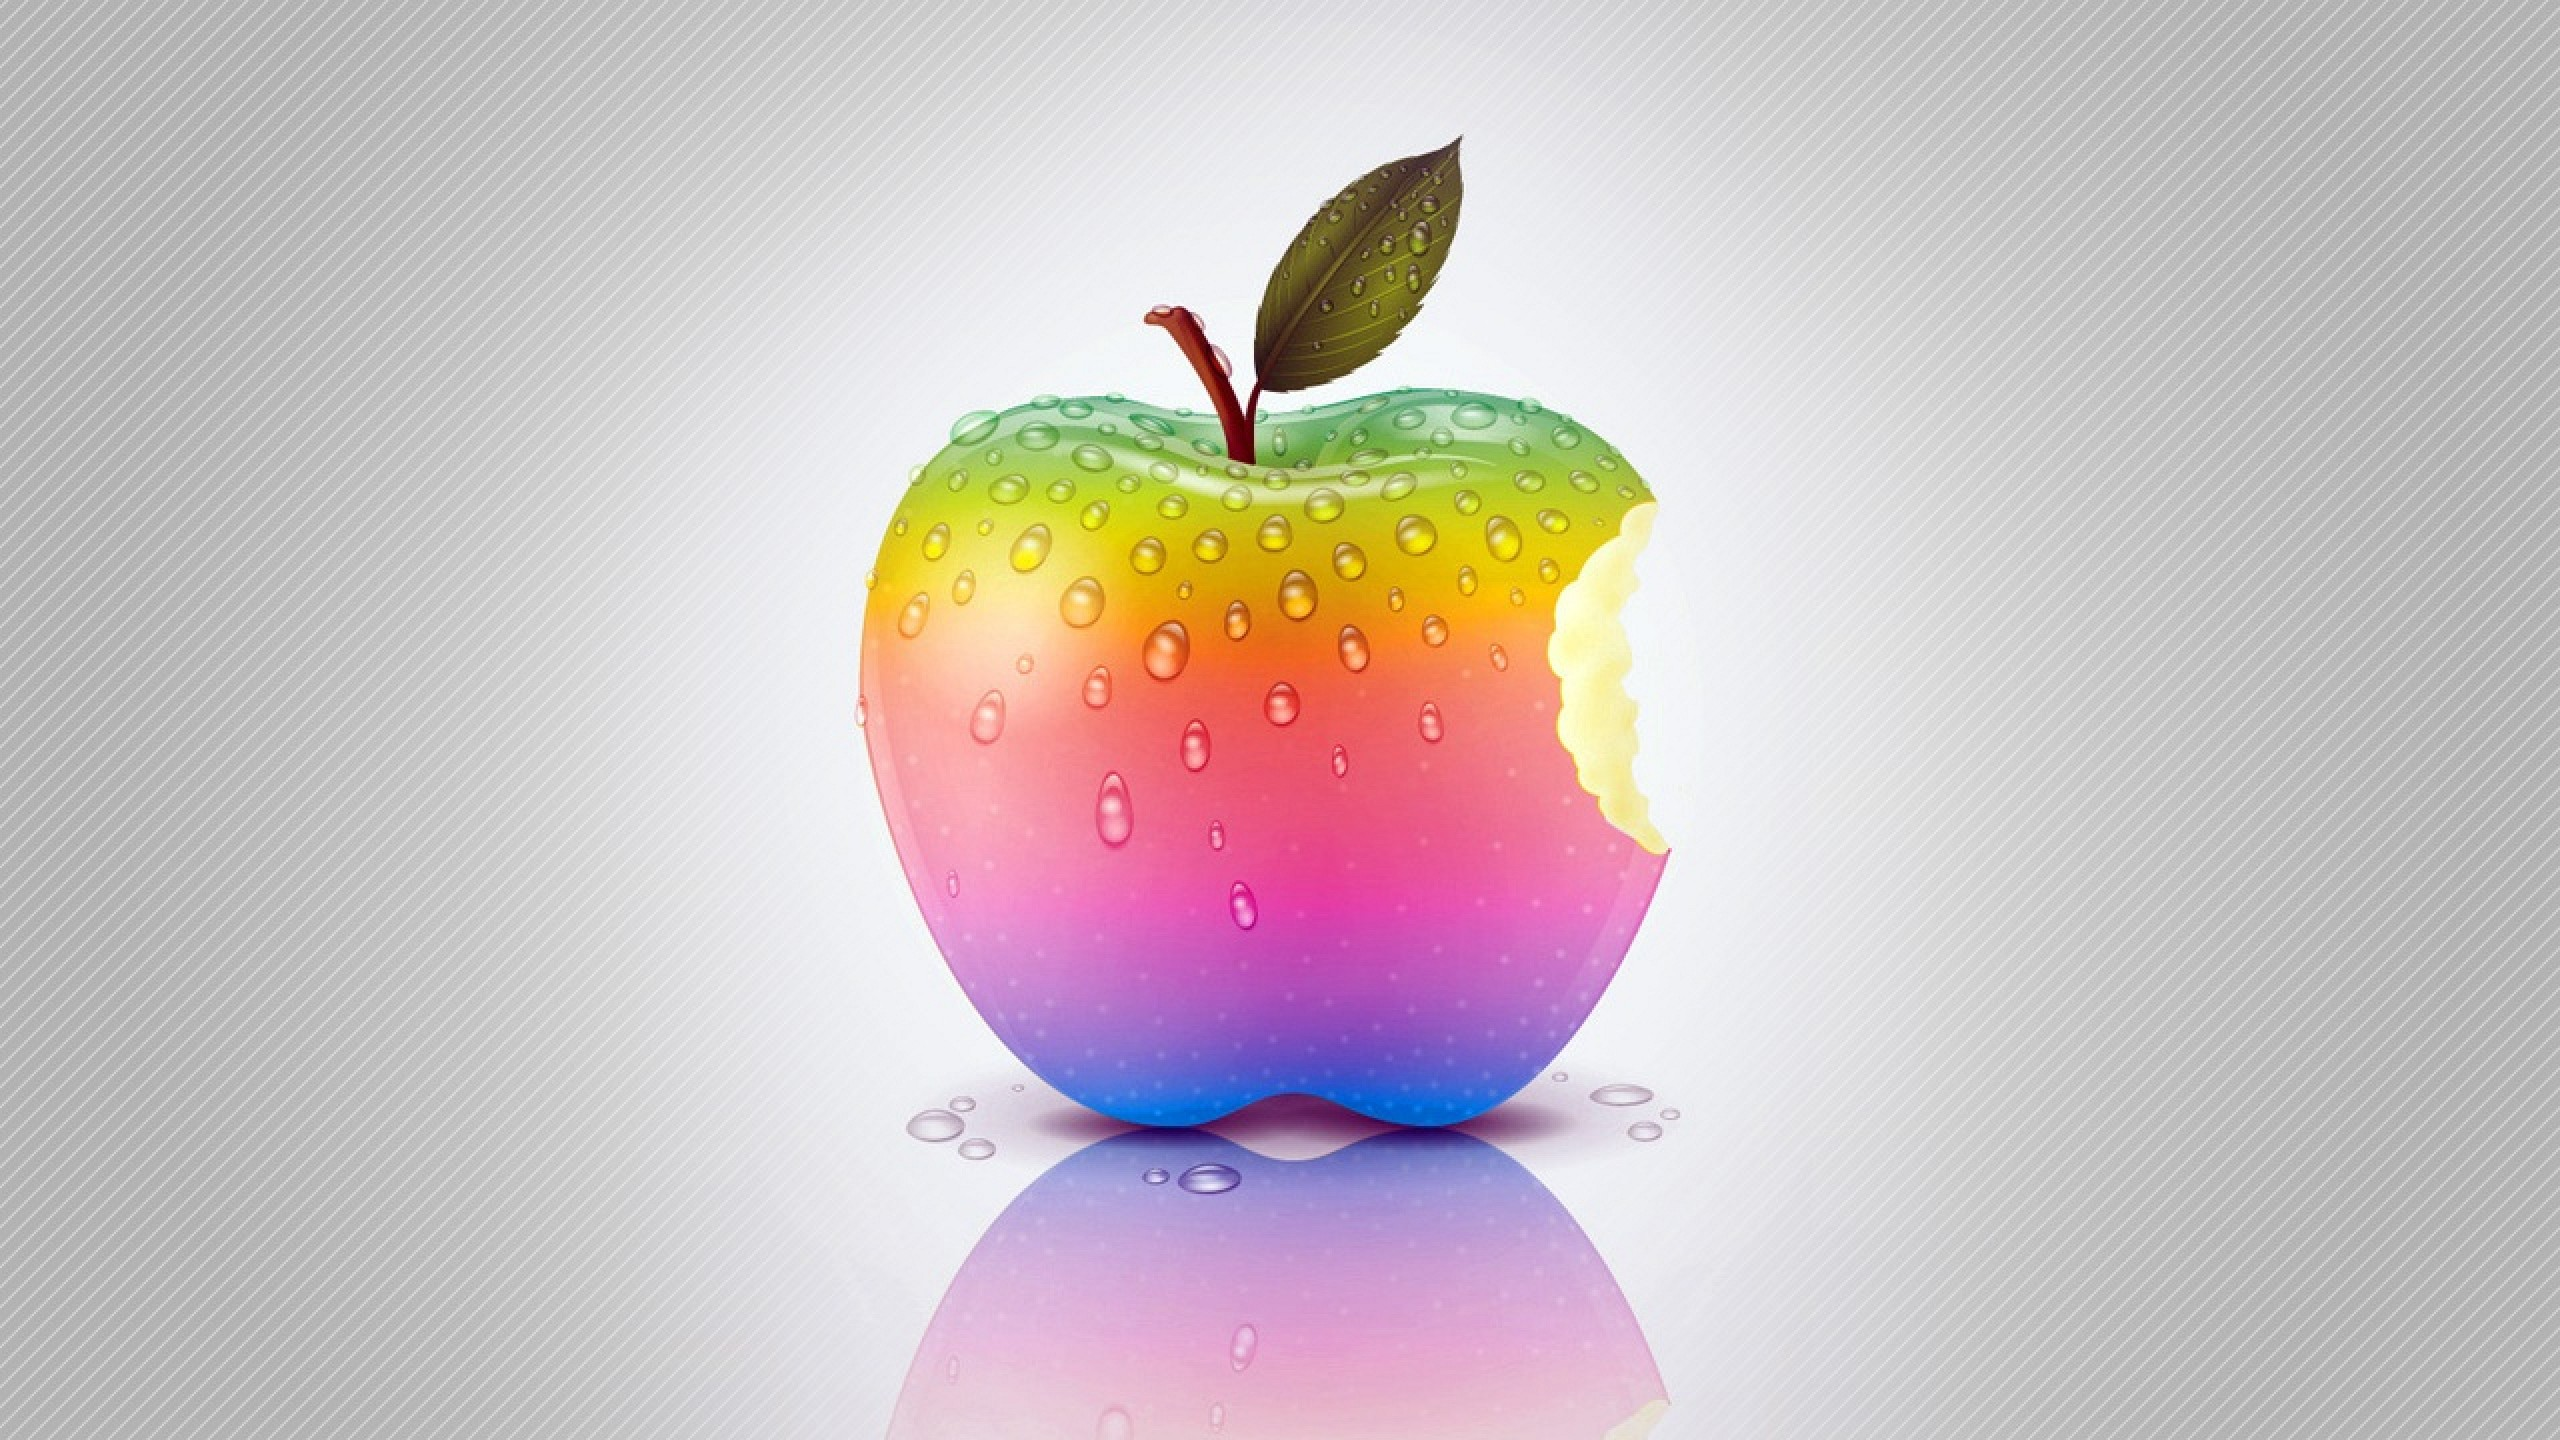 Wallpaper Apples